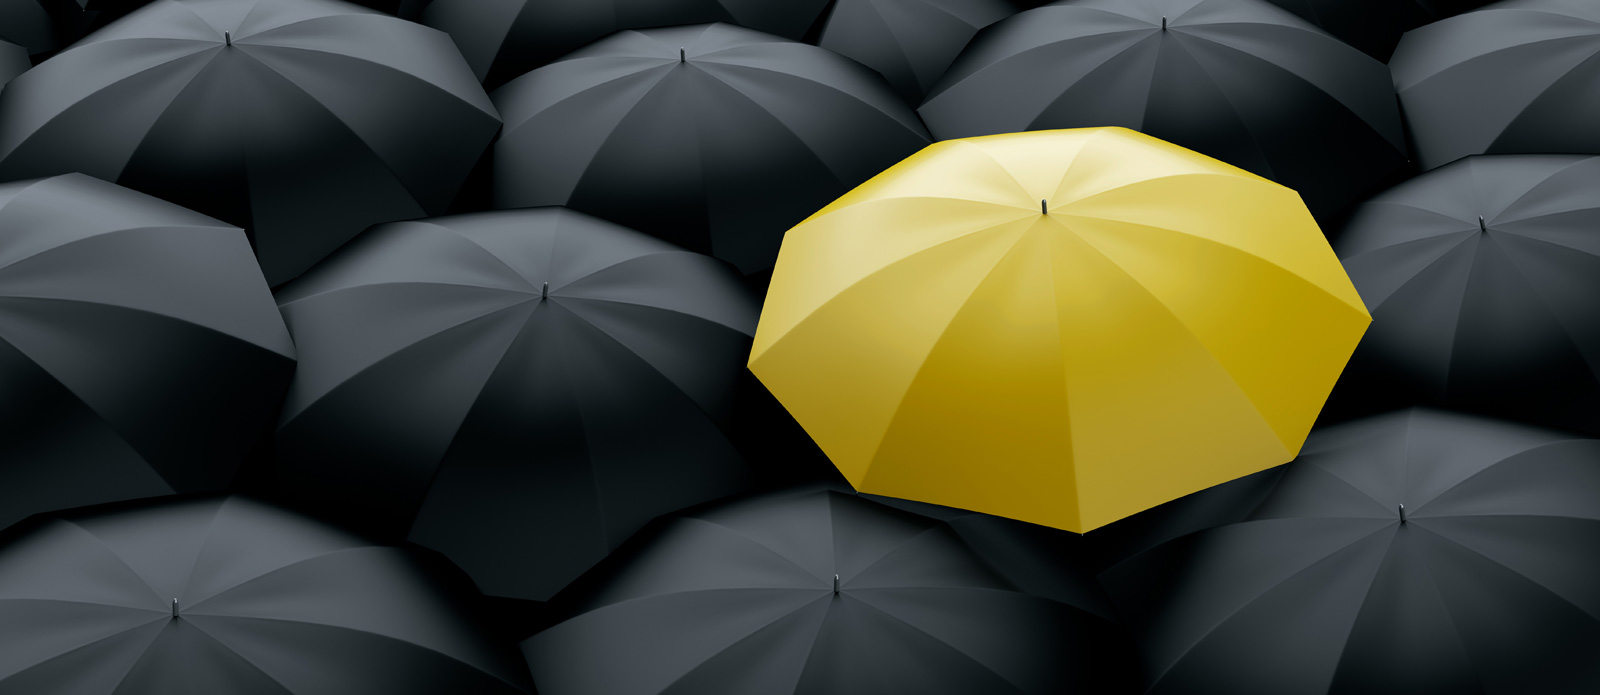 A unique identity helps you stand out from the crowd